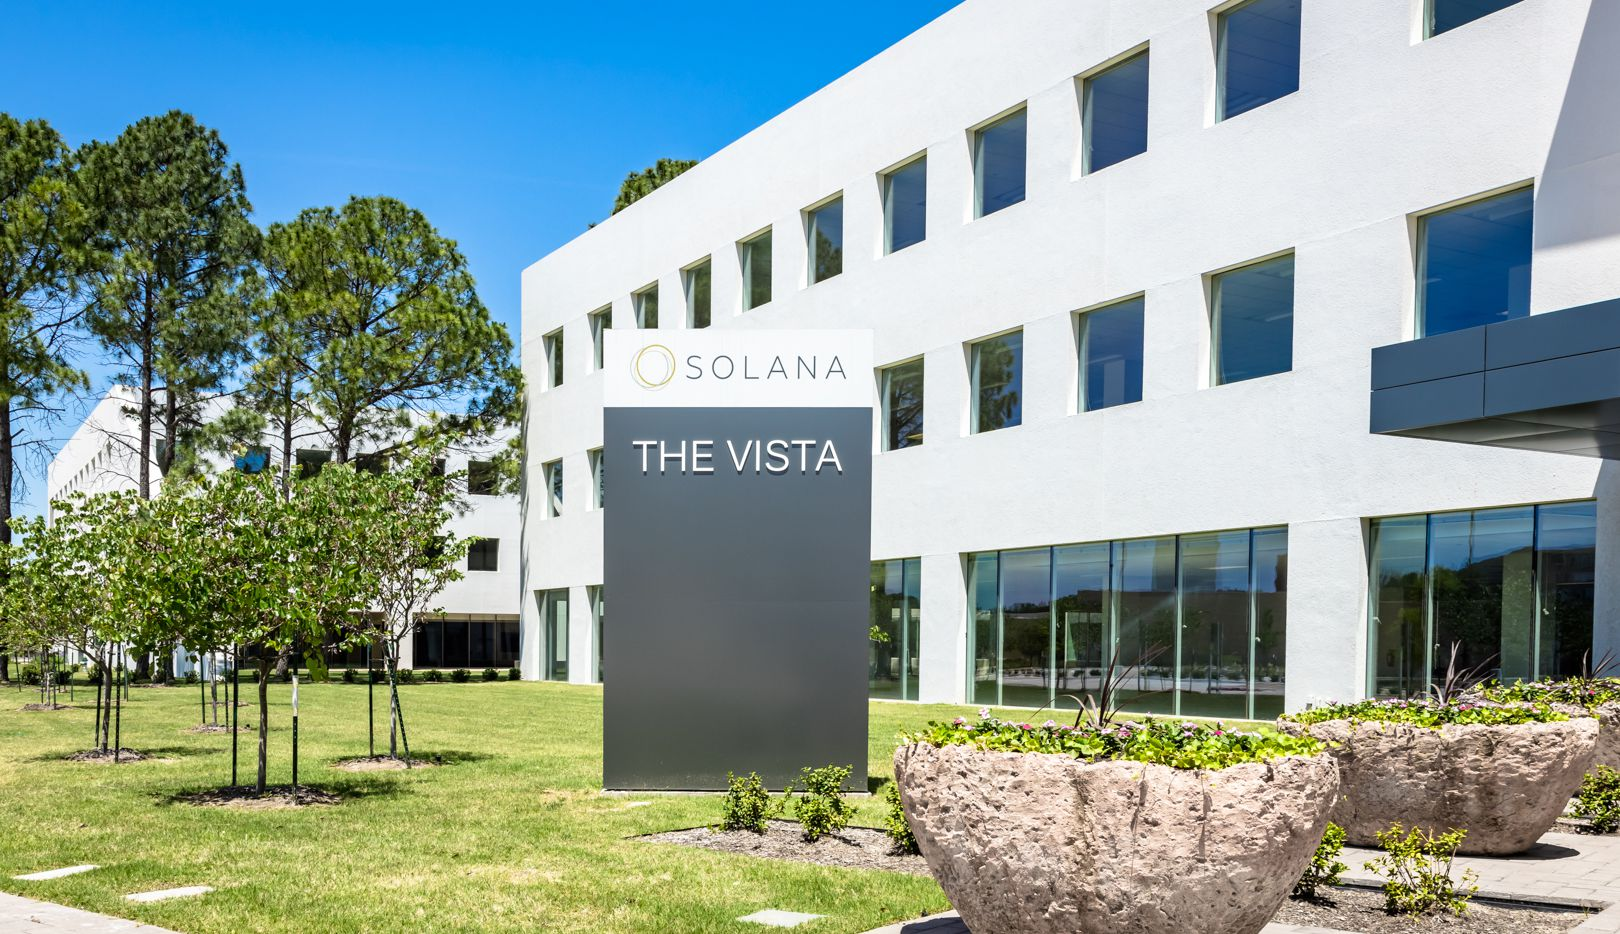 The Town of Westlake rented office space in the Solana development on State Highway 114.